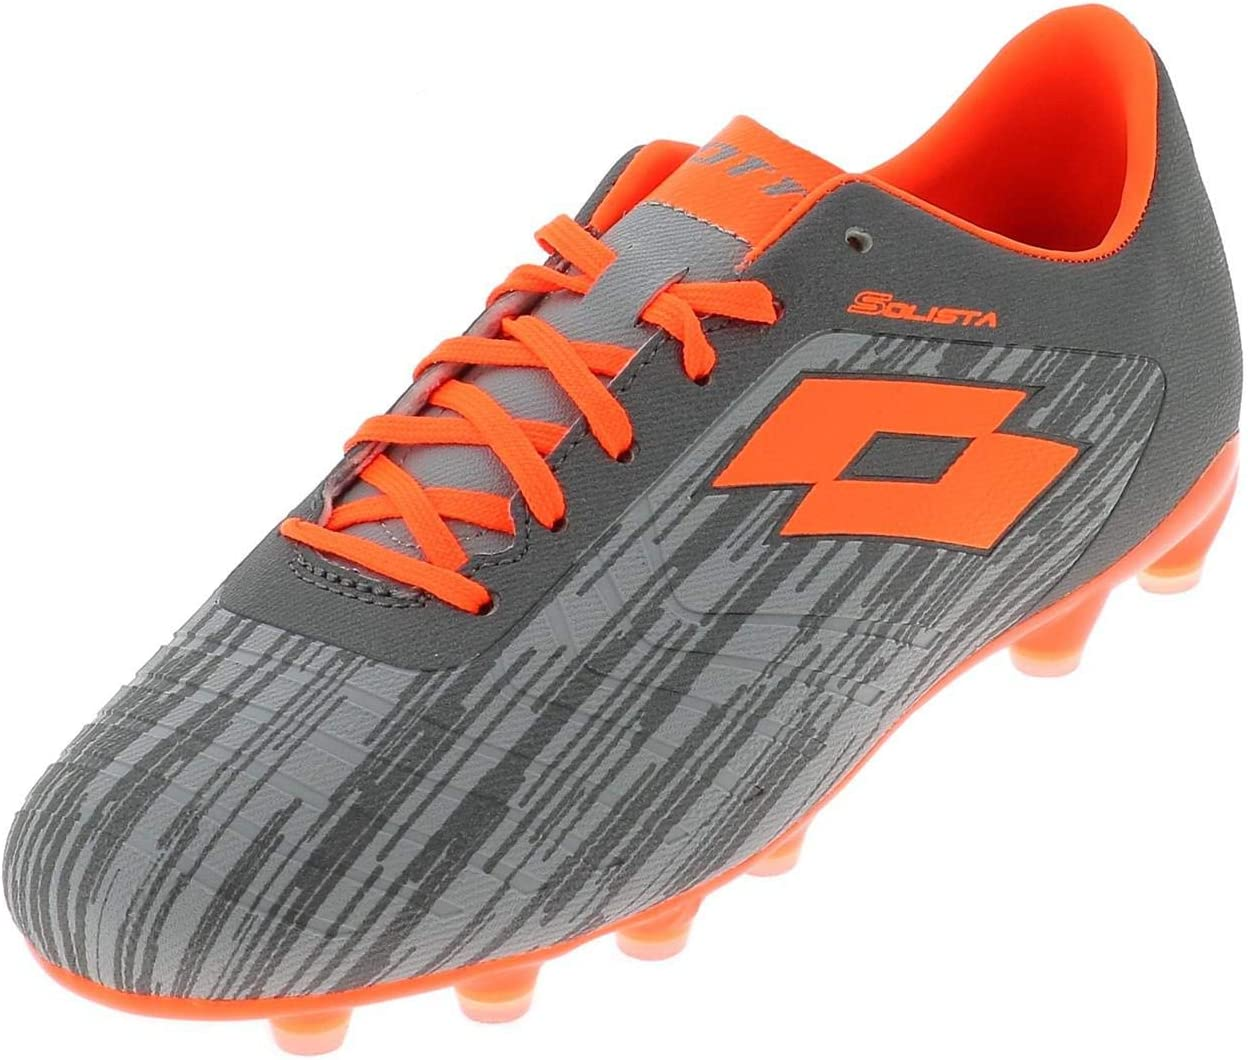 Solista 700 jr Moule Lotto Chaussures Football moul/ées